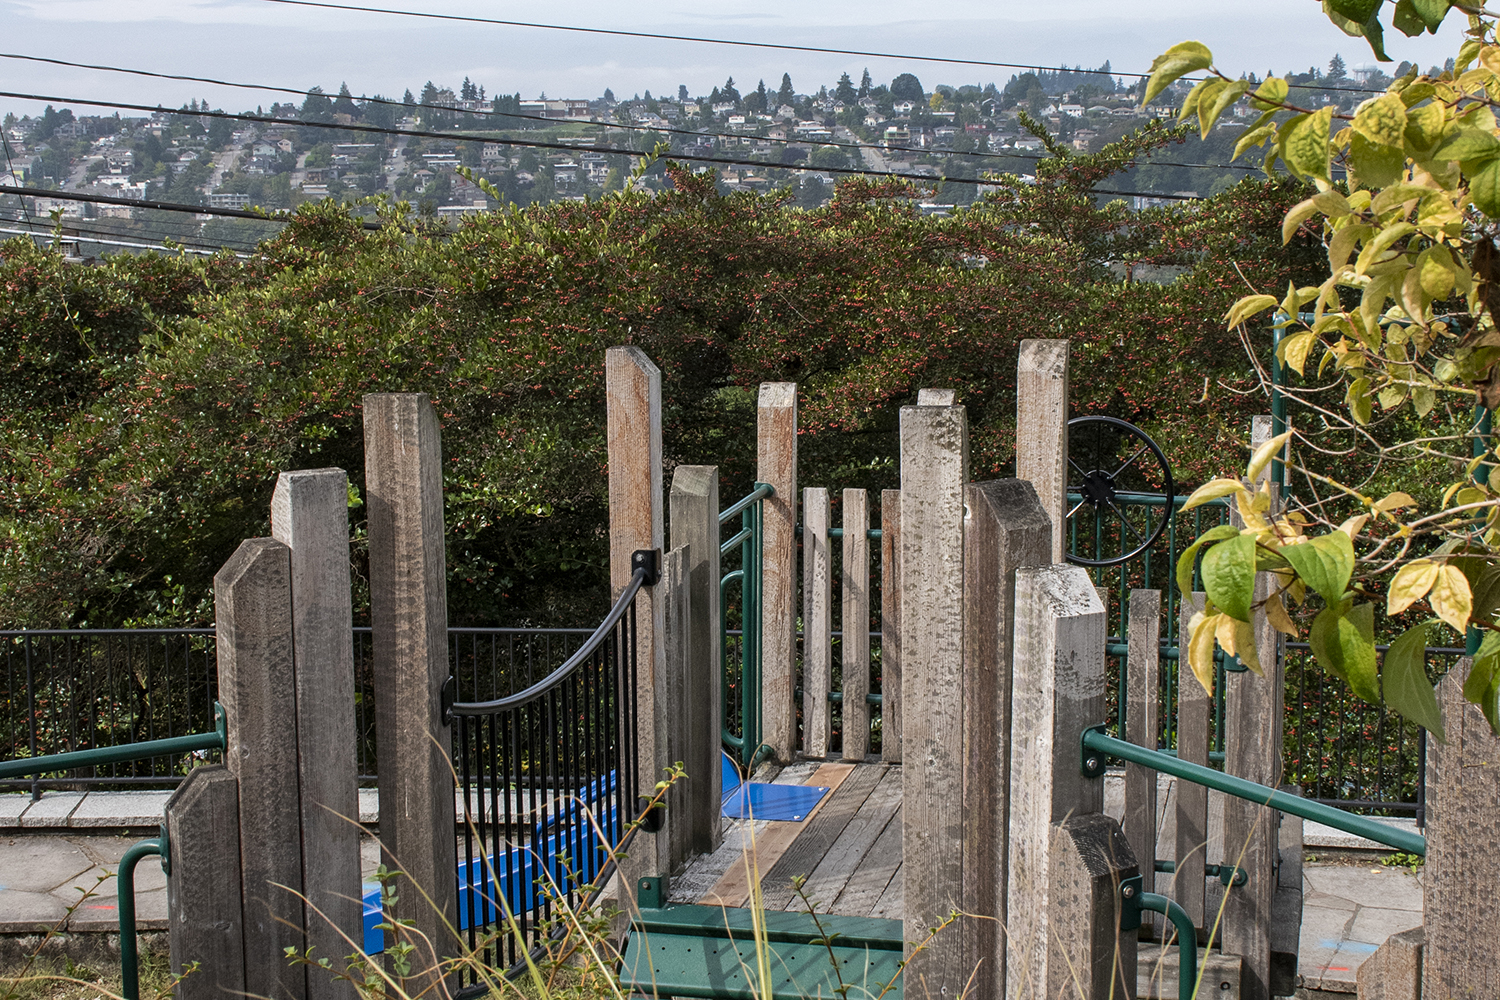 Best found on foot, this little neighborhood spot is great for the kiddos. Soundview Terrace, aka Rachel's Park, offers a large play area with slides and swings, and picnic tables with scenic views for the adults.{ }(Image: Rachael Jones / Seattle Refined)